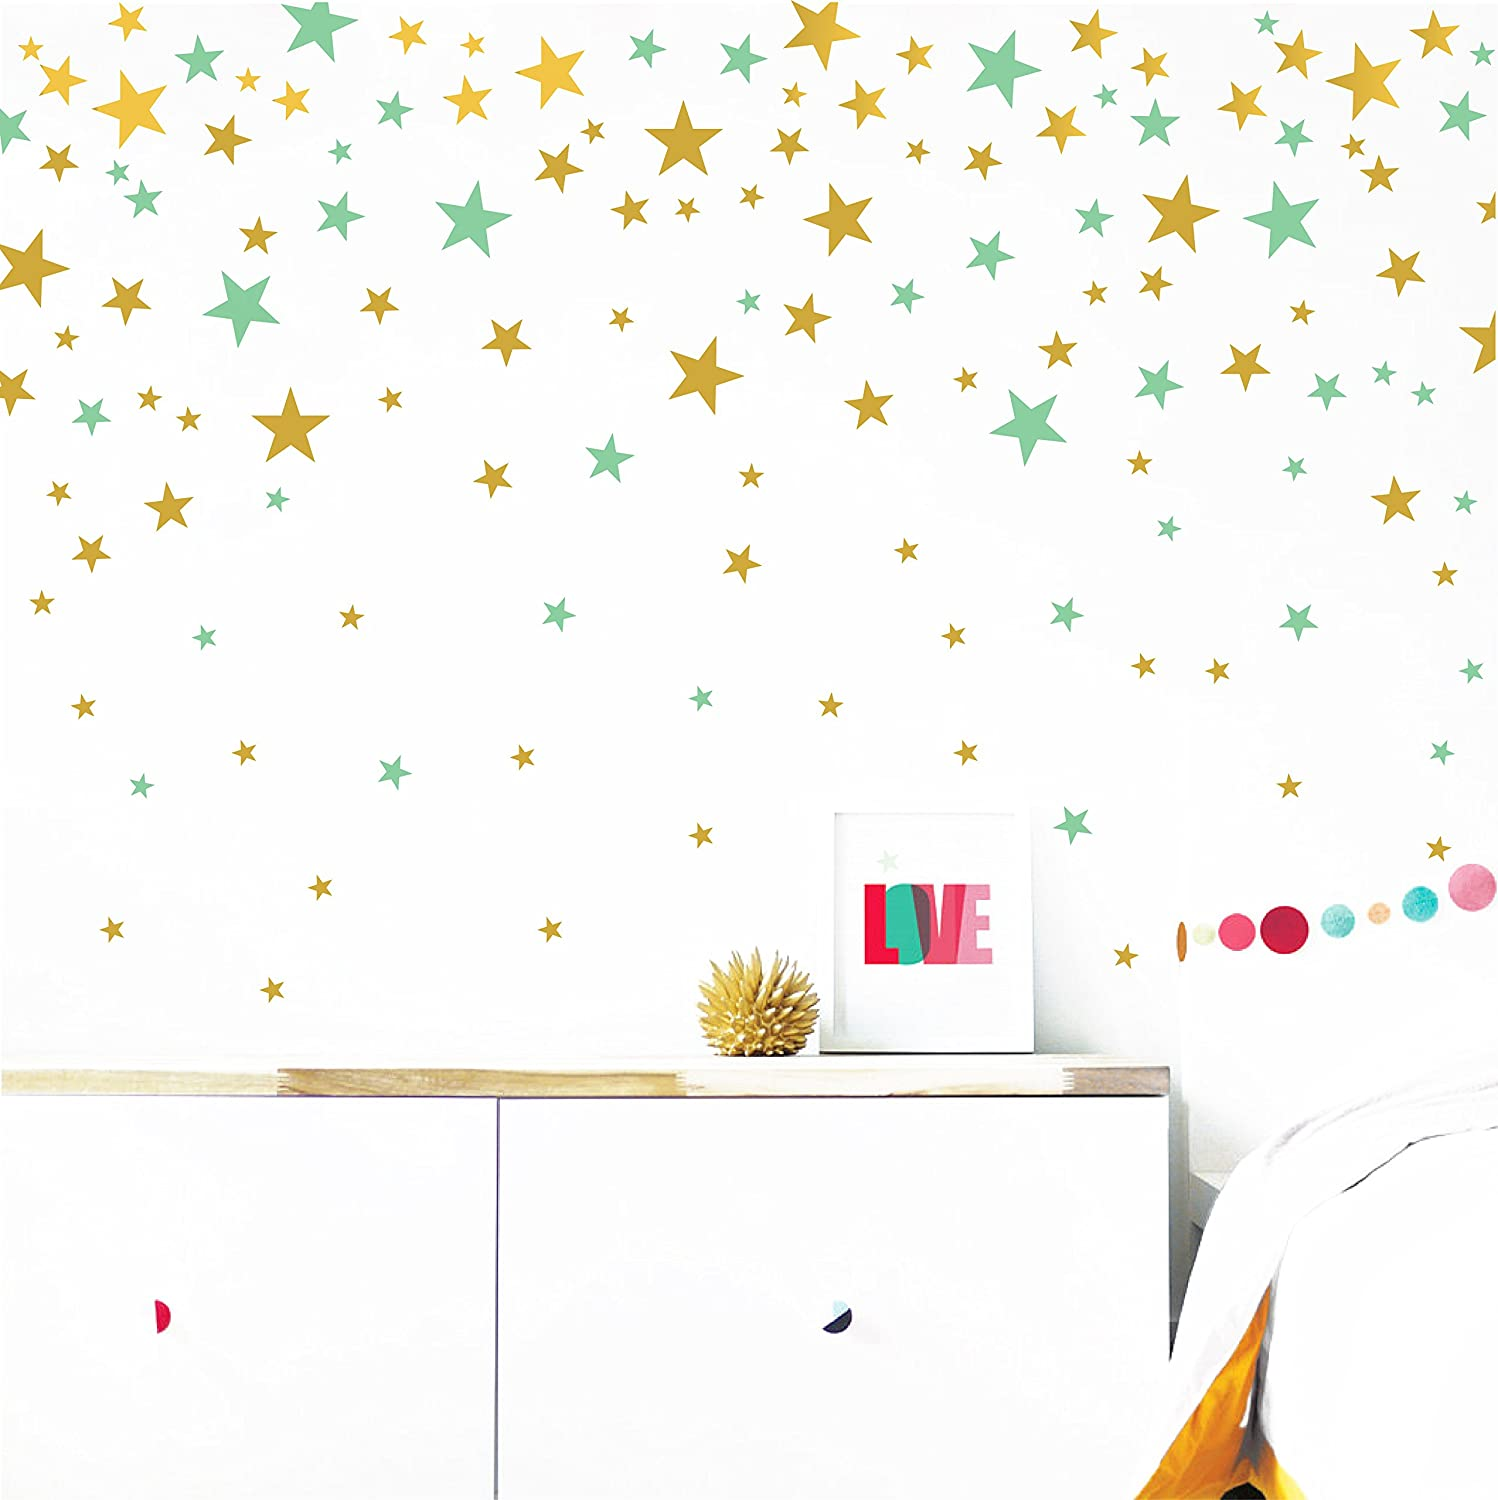 Gold and Mint Stars Wall Vinyl Decal Decor Nursery. Adhesive Star Stickers for Kids. Baby Nordic Stars Bedroom Decoration.